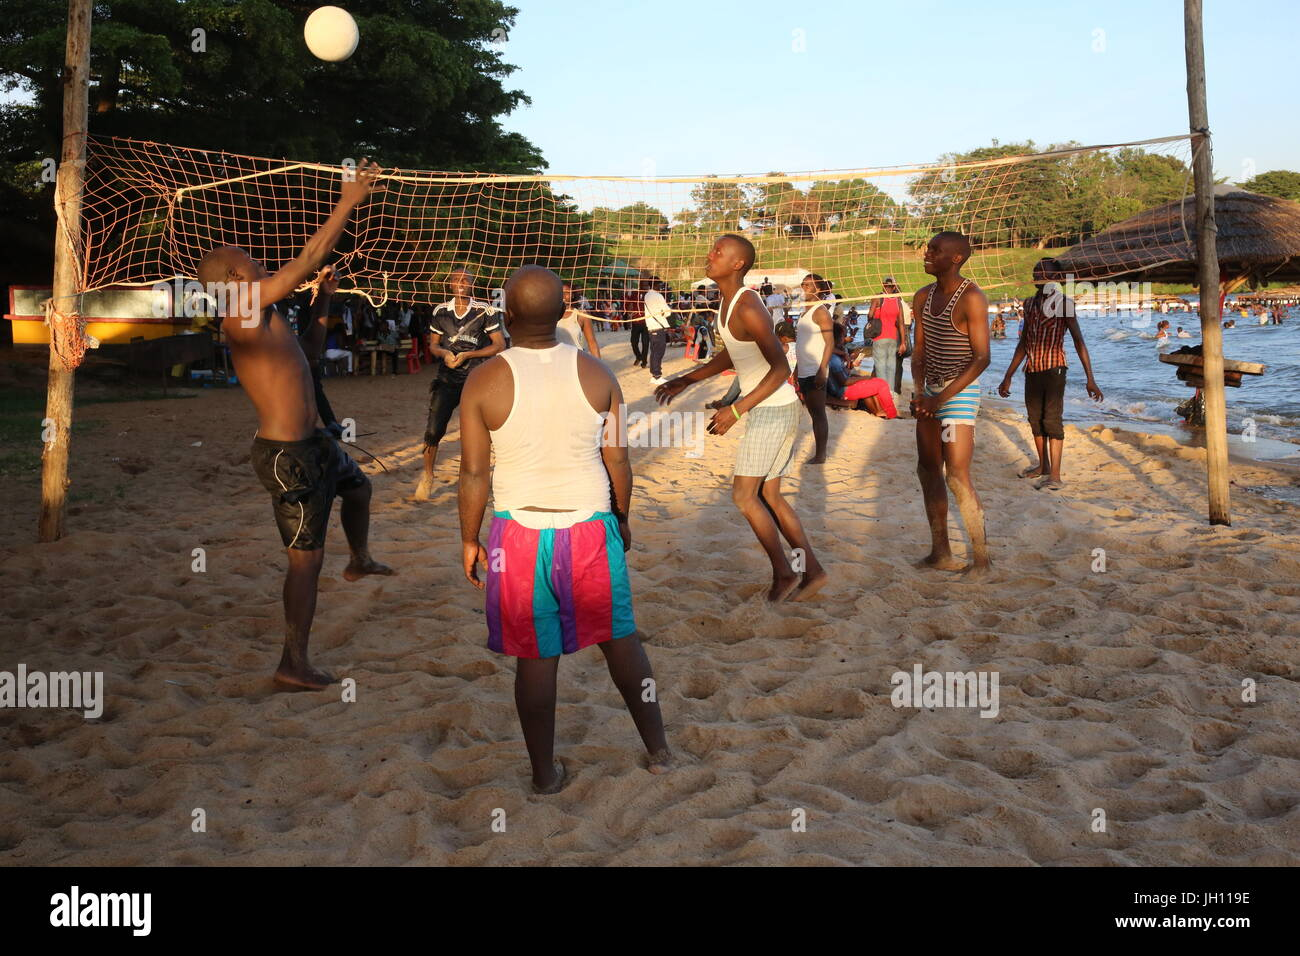 Strand in Entebbe. Volley-Ball. Uganda. Stockfoto